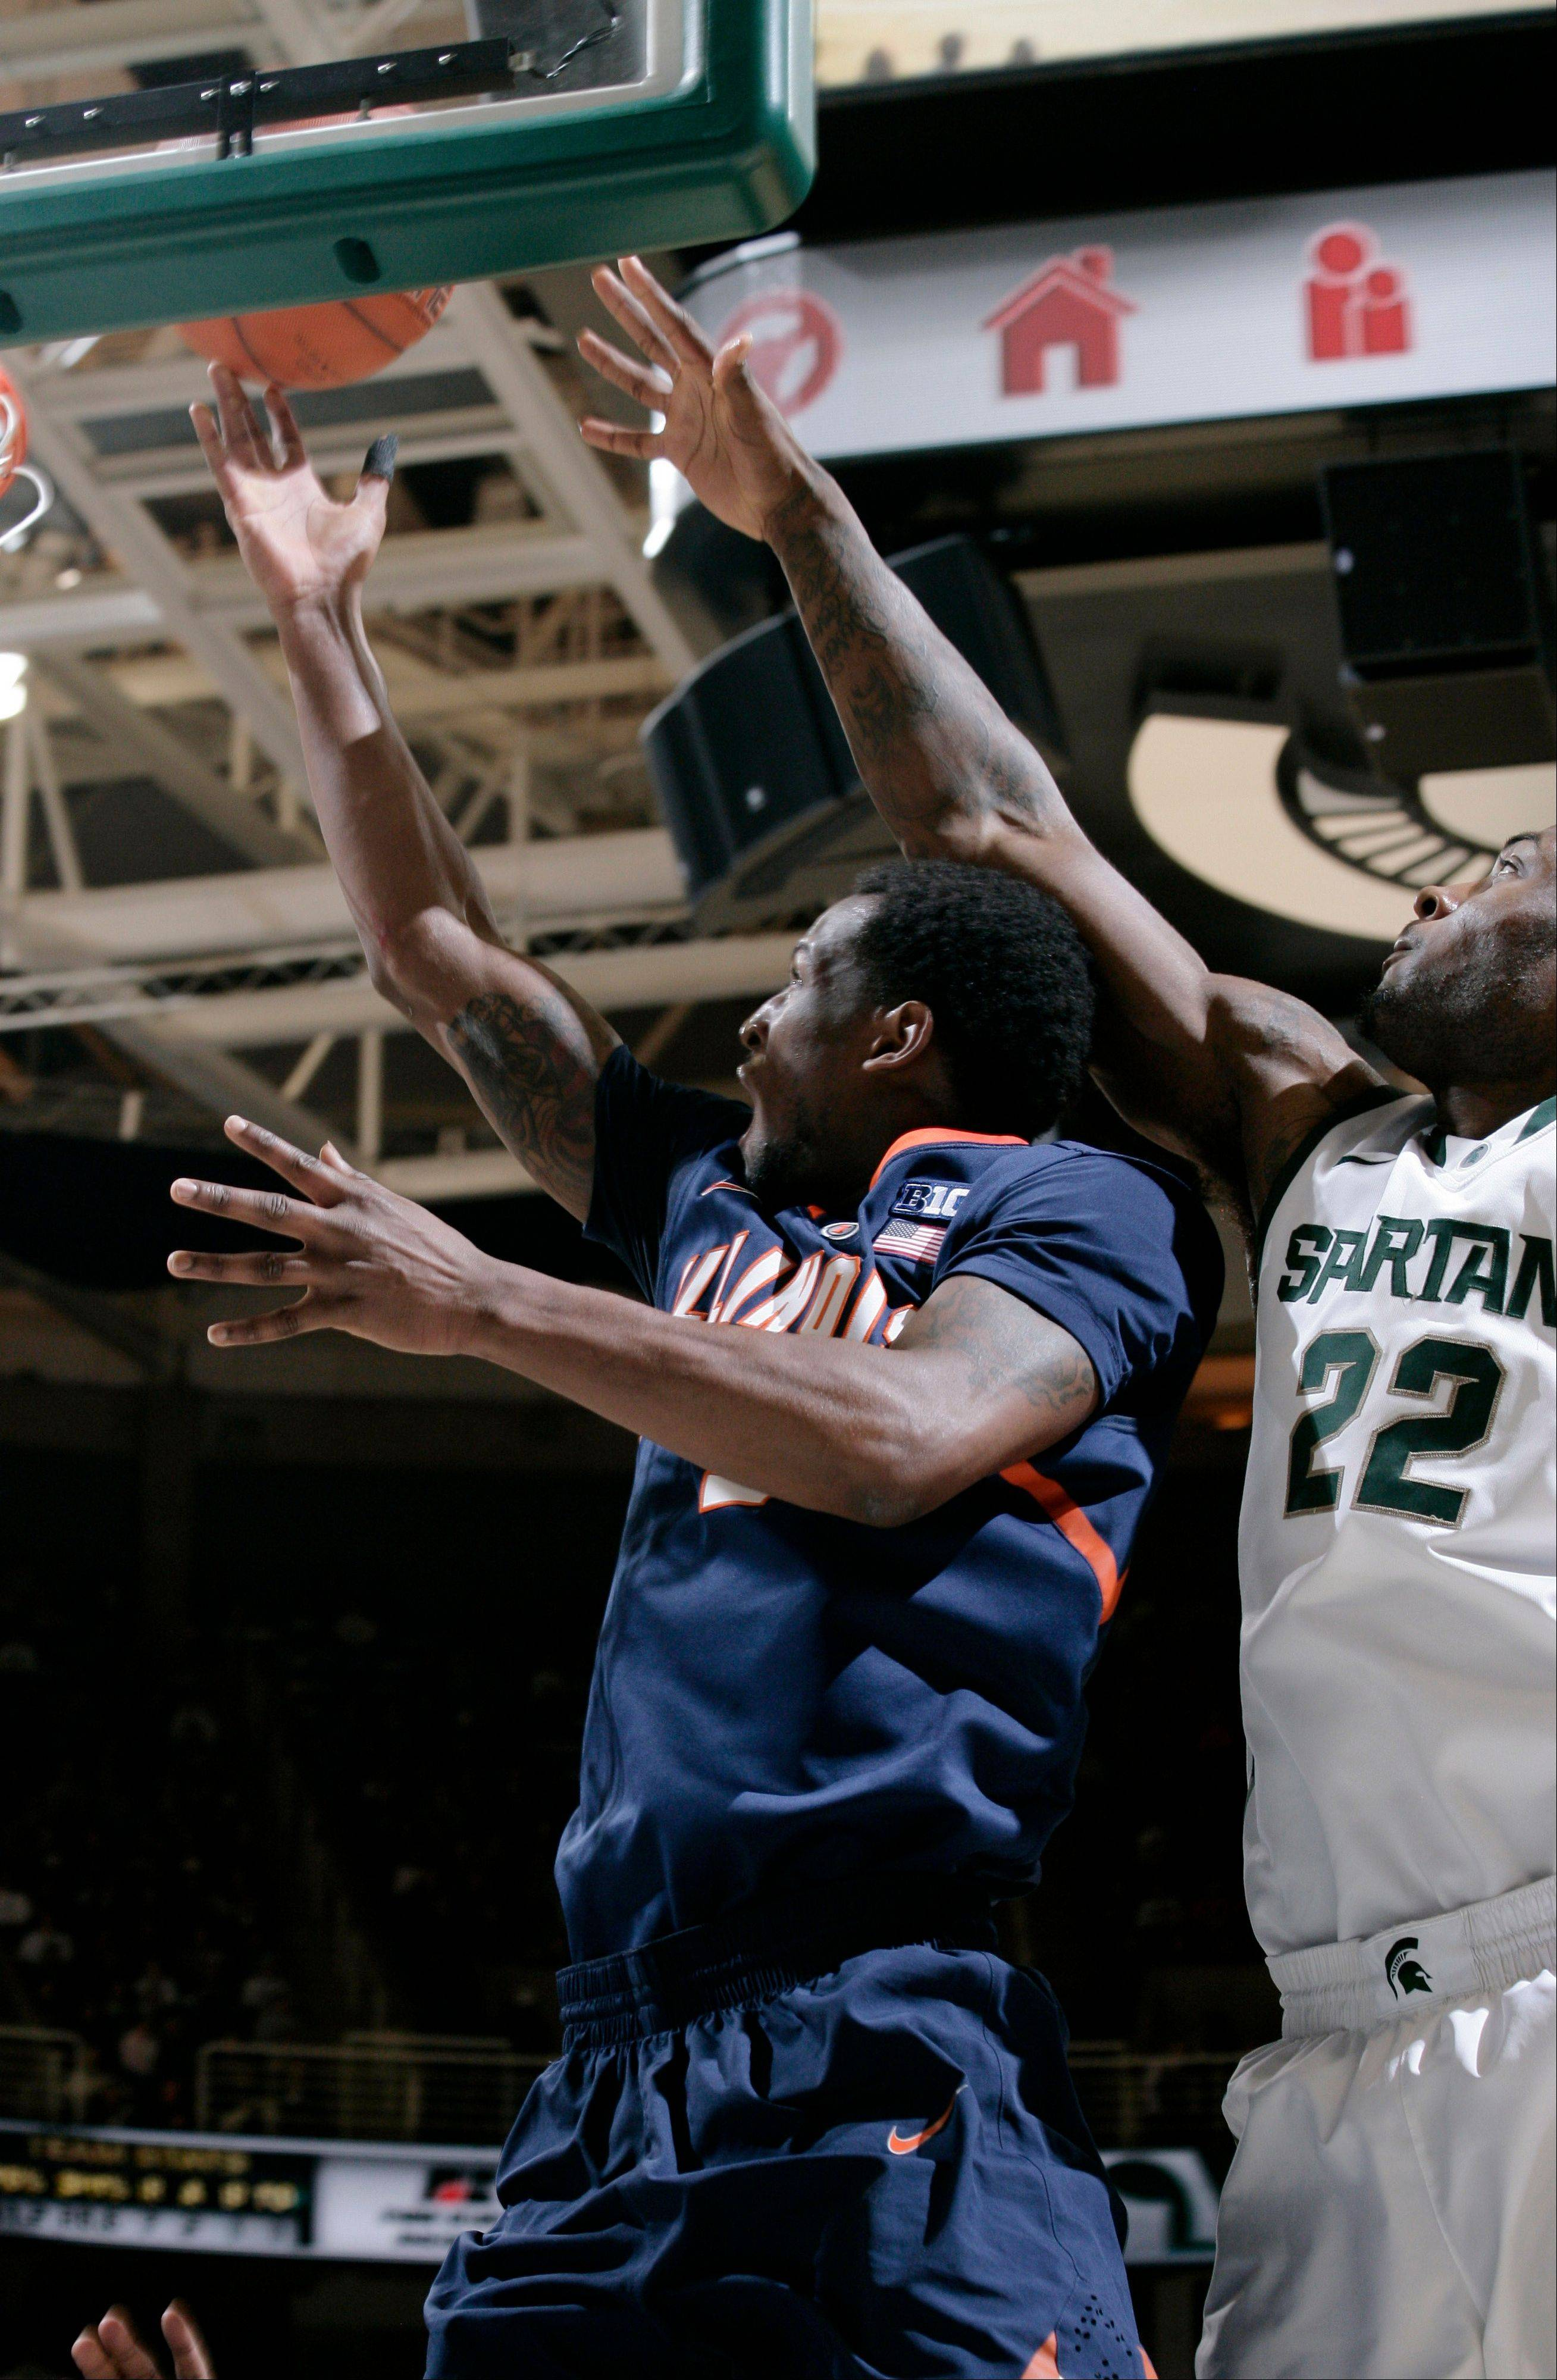 Illinois' D.J. Richardson, left, puts up a layup next to Michigan State's Branden Dawson (22) during the first half of an NCAA college basketball game Thursday in East Lansing, Mich. (AP Photo/Al Goldis)